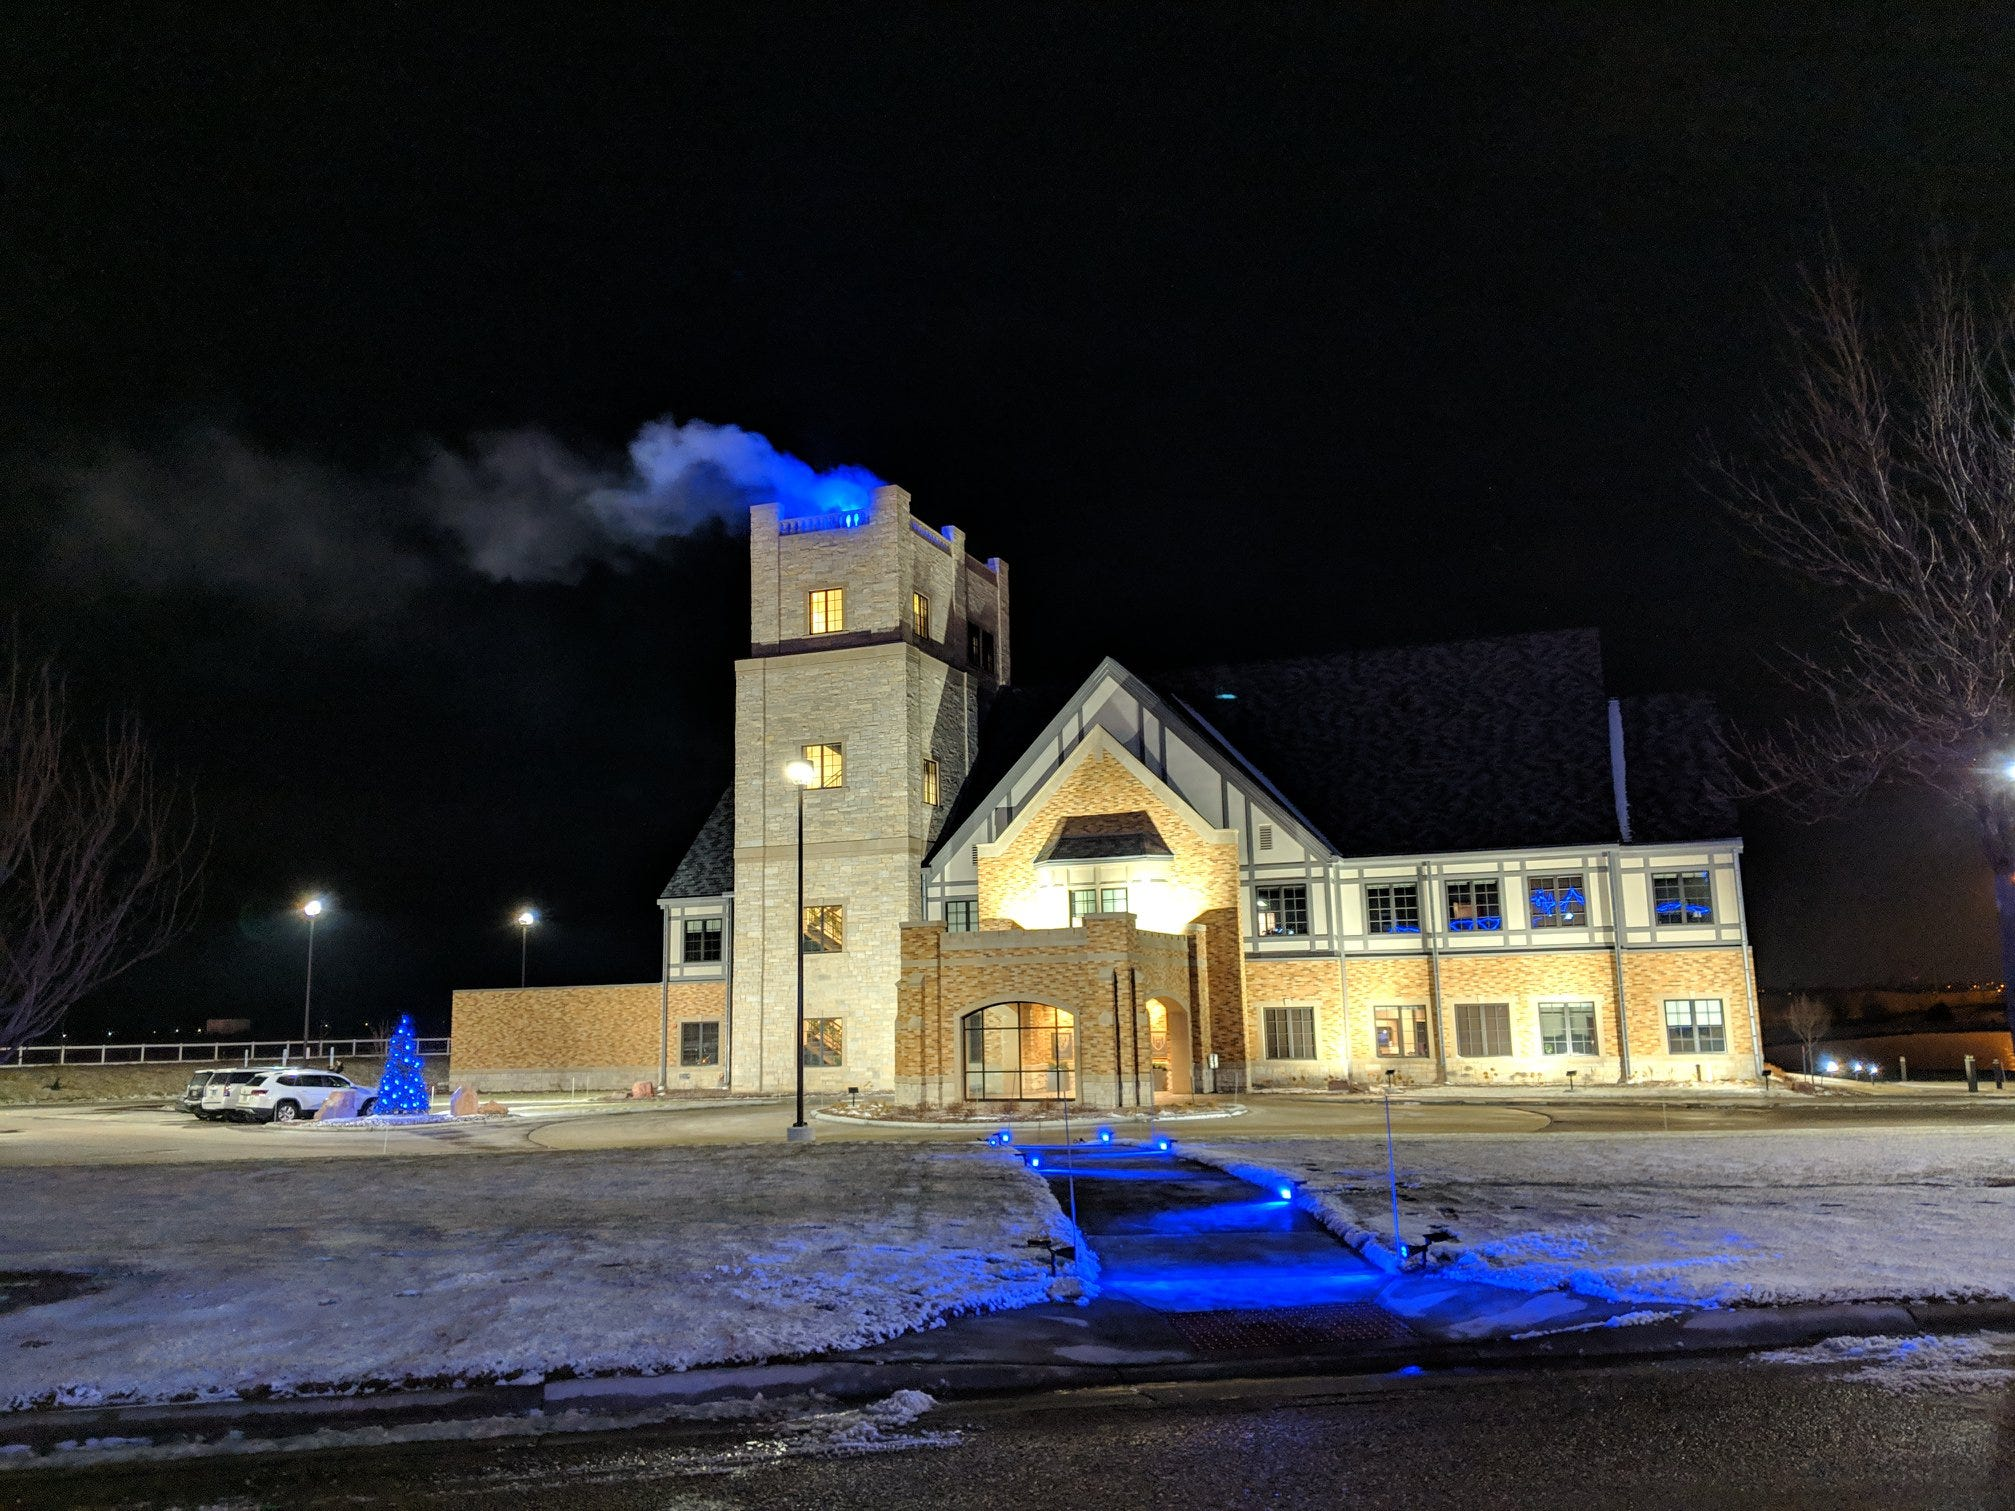 Blue smoke wafted above the Sanford Health headquarters in Sioux Falls Tuesday, Dec. 4 as a way to announce that a recipient of the Lorraine Cross Award was chosen.